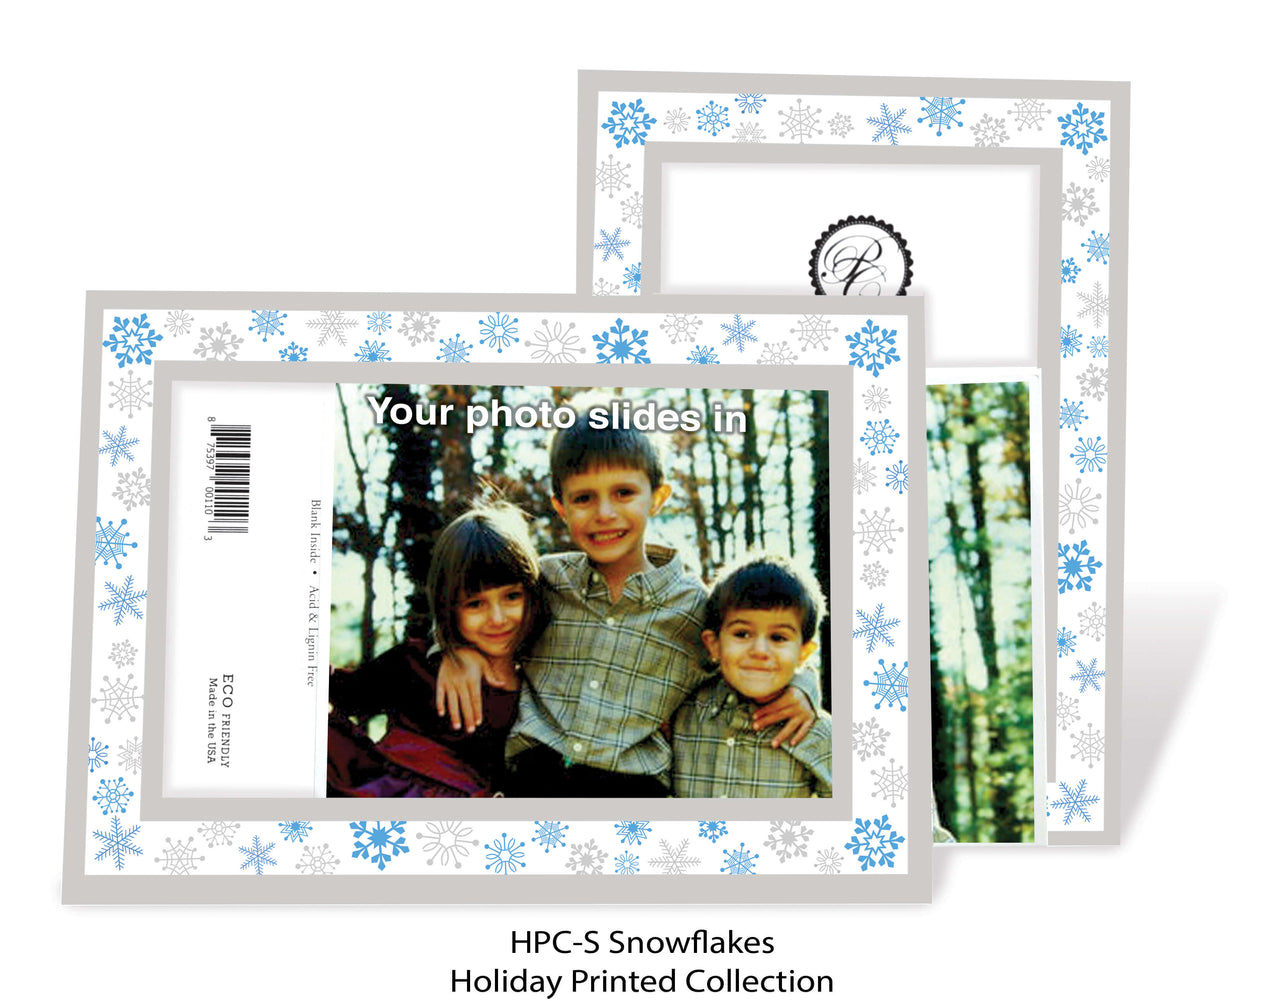 Snowflakes Holiday Printed Photo Greeting Cards Plymouth Cards